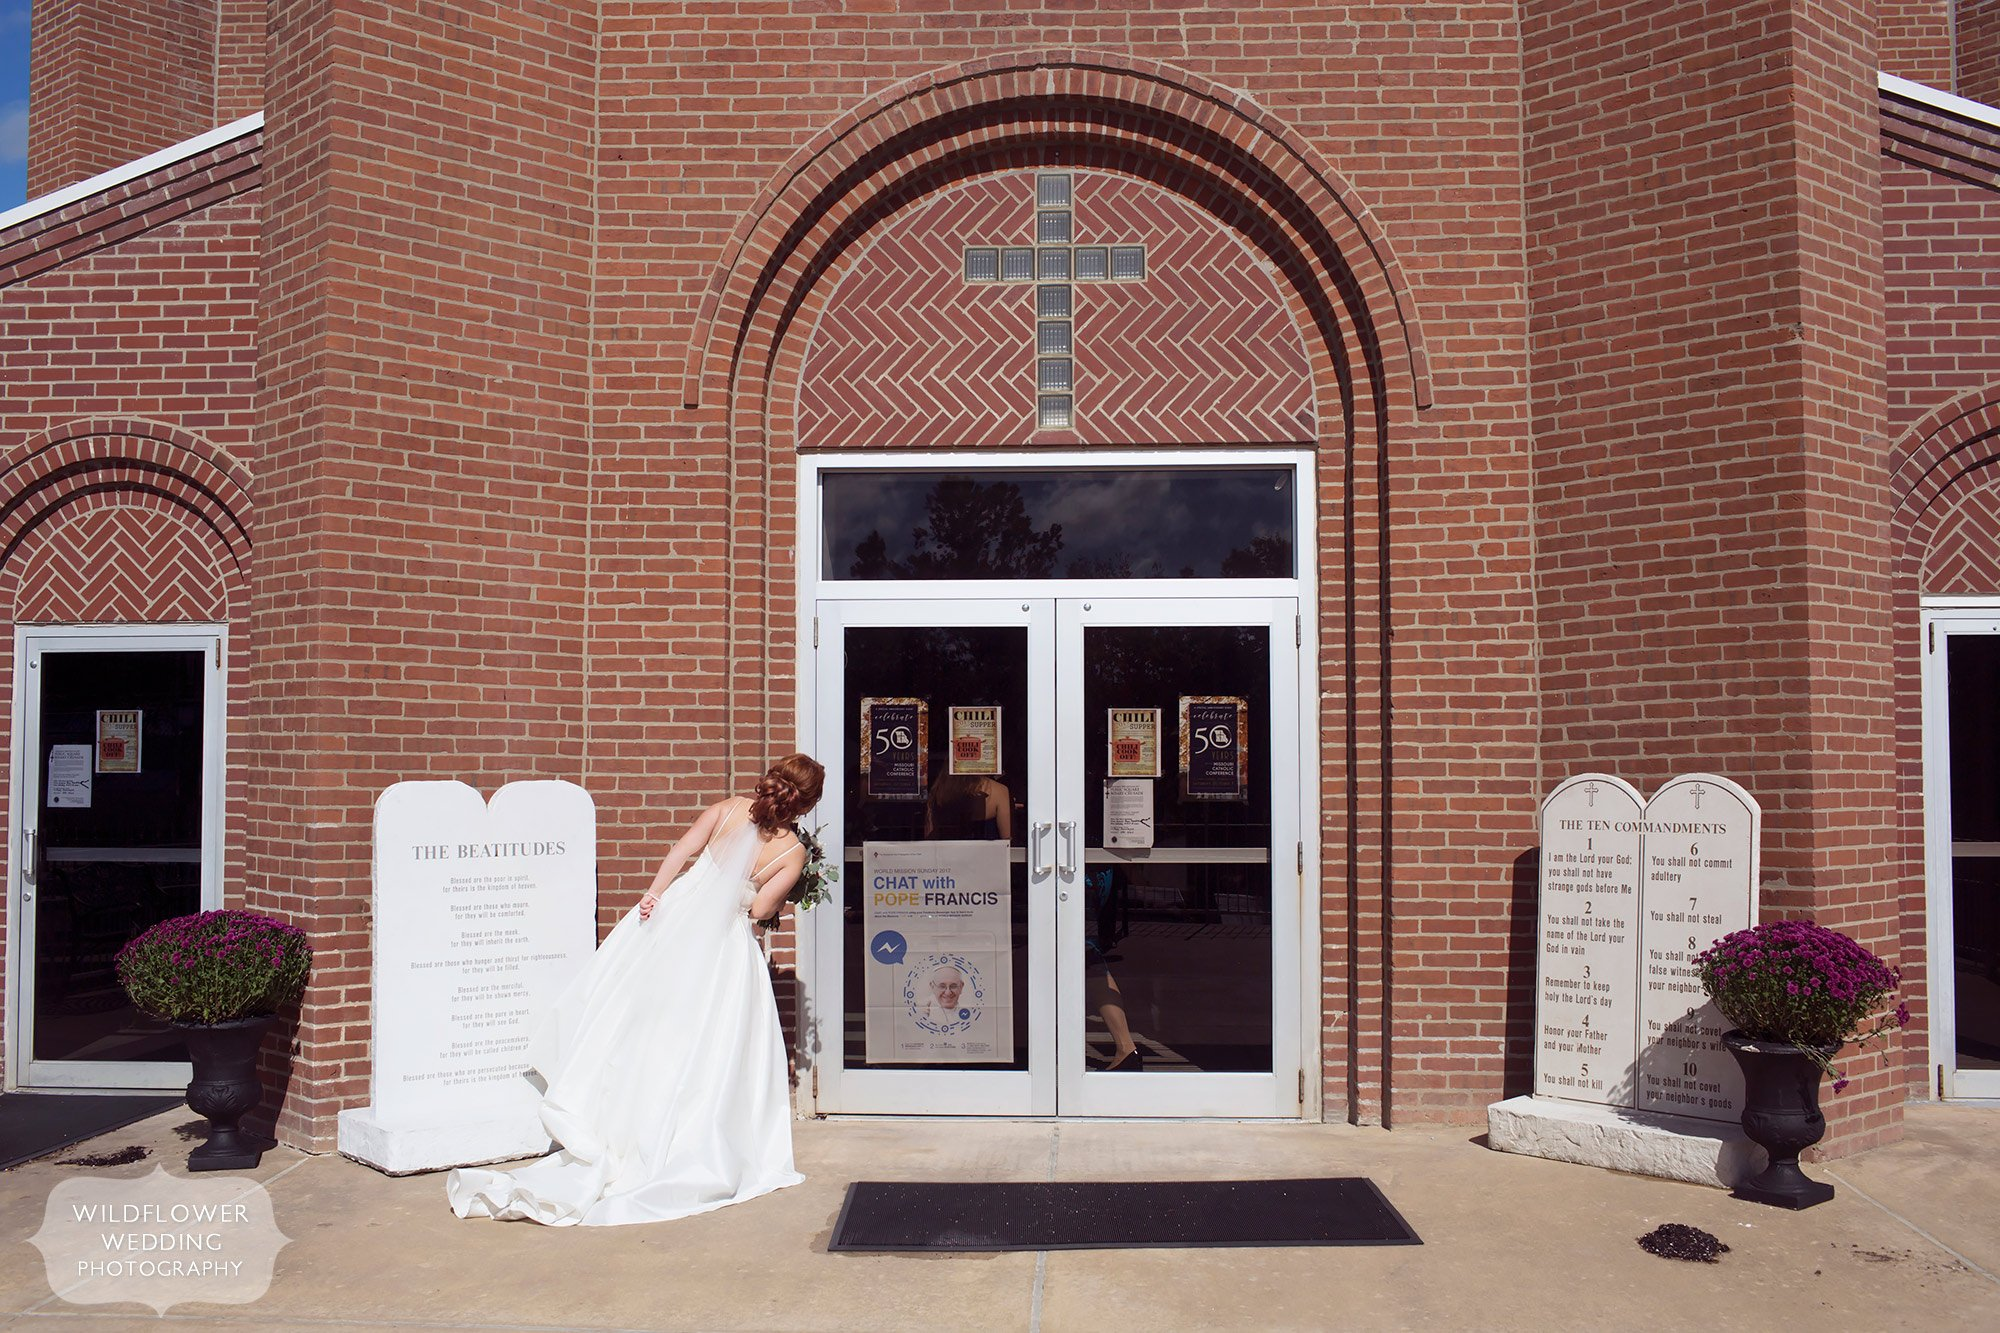 Great documentary wedding photo of the bride looking in the windows of the church before her Jeff City, MO wedding.